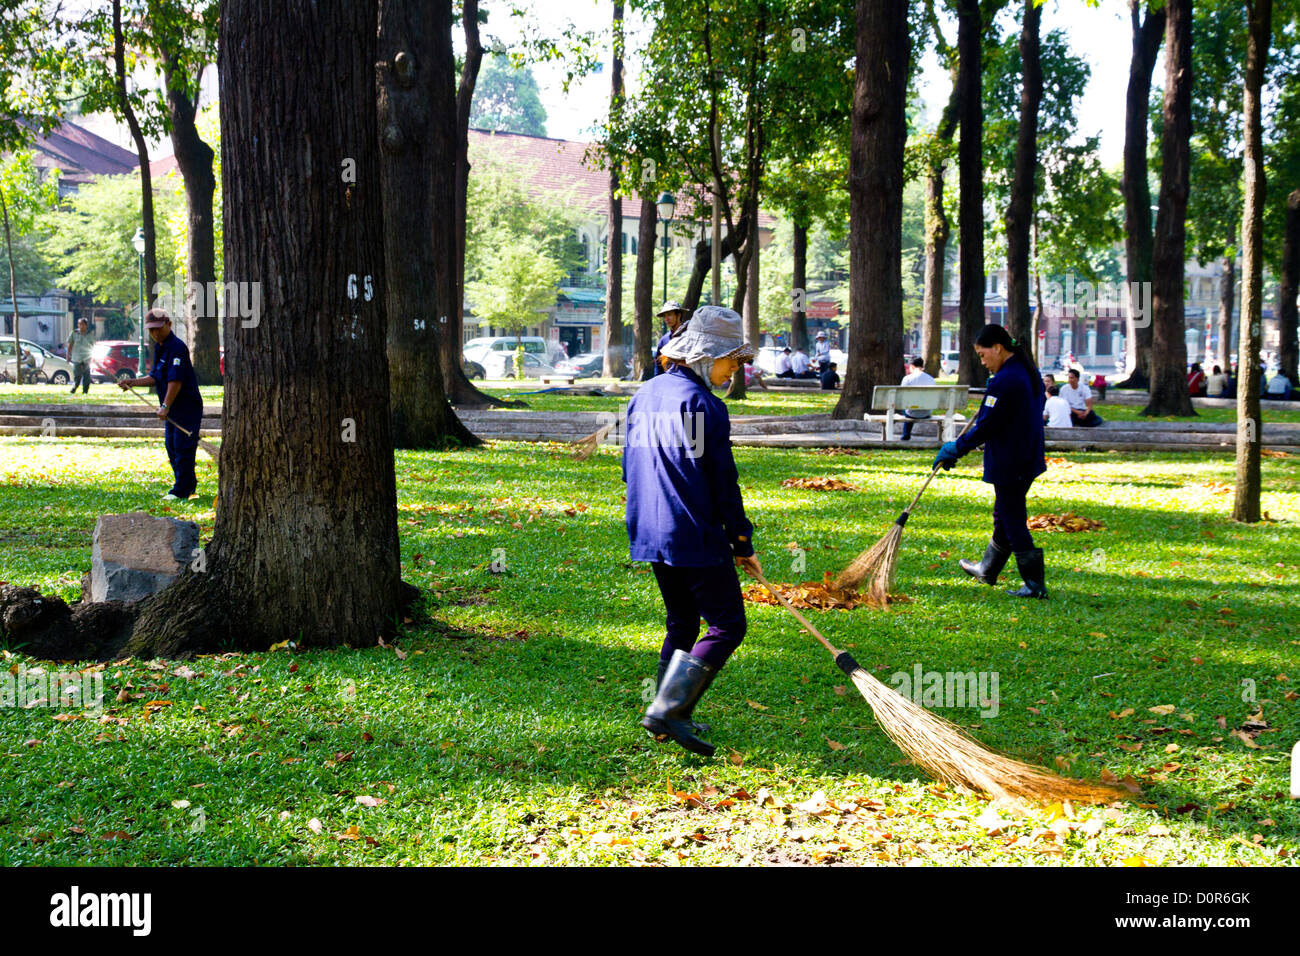 Workers sweeping up leaves in Ho Chi Minh City in Vietnam. - Stock Image